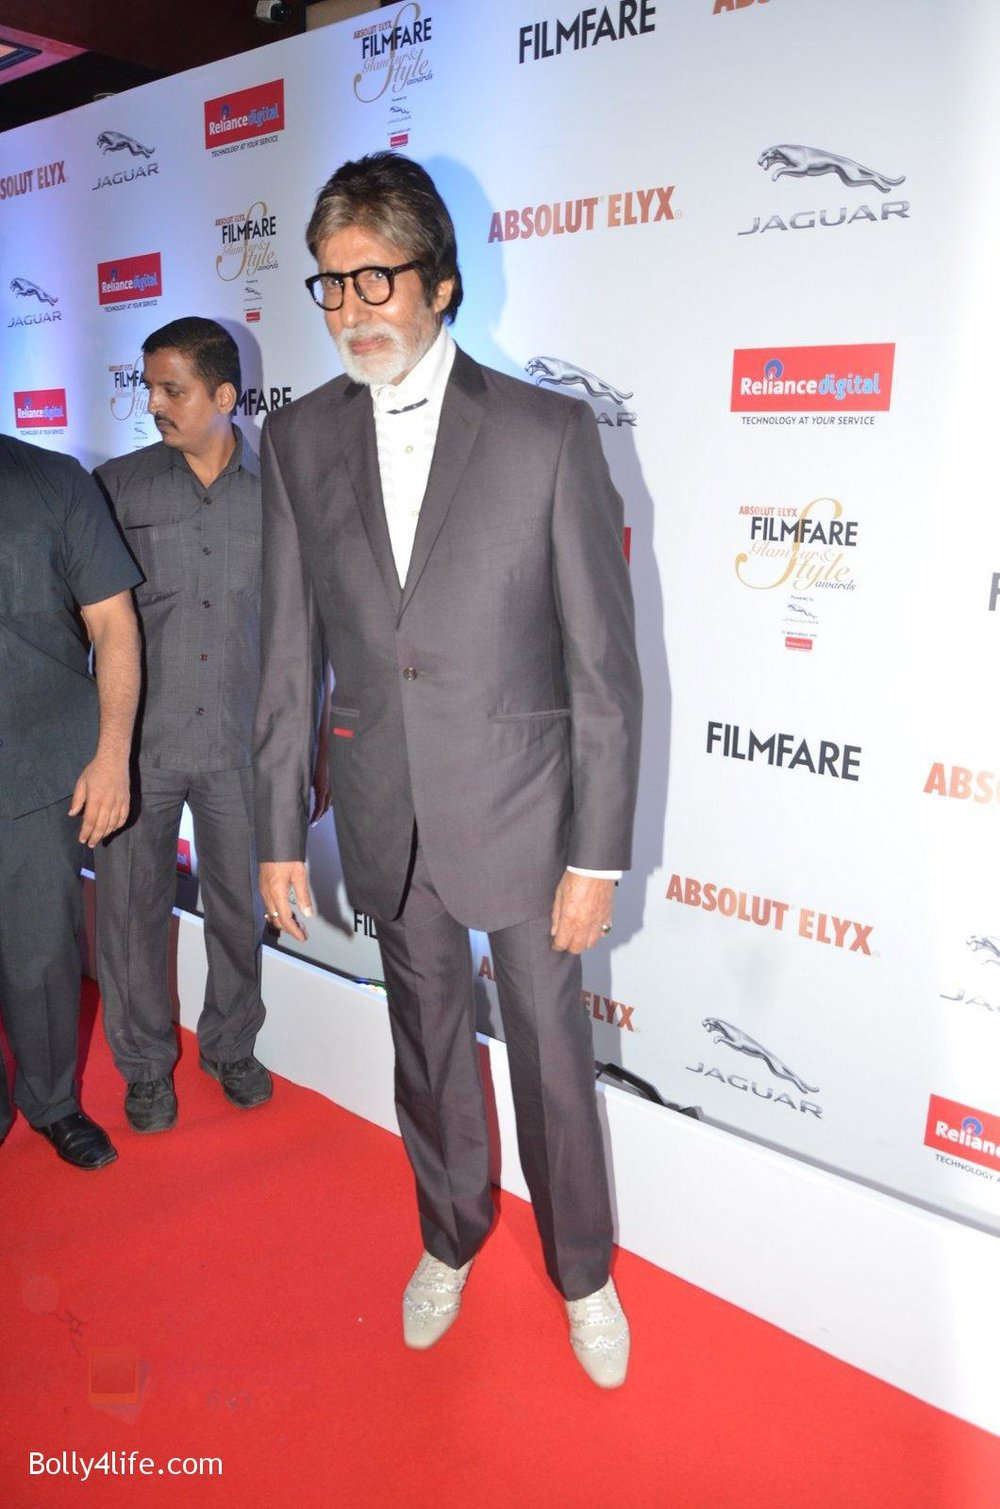 Amitabh-Bachchan-at-Filmfare-Glamour-Style-Awards-2016-in-Mumbai-on-15th-Oct-2016-2182.jpg